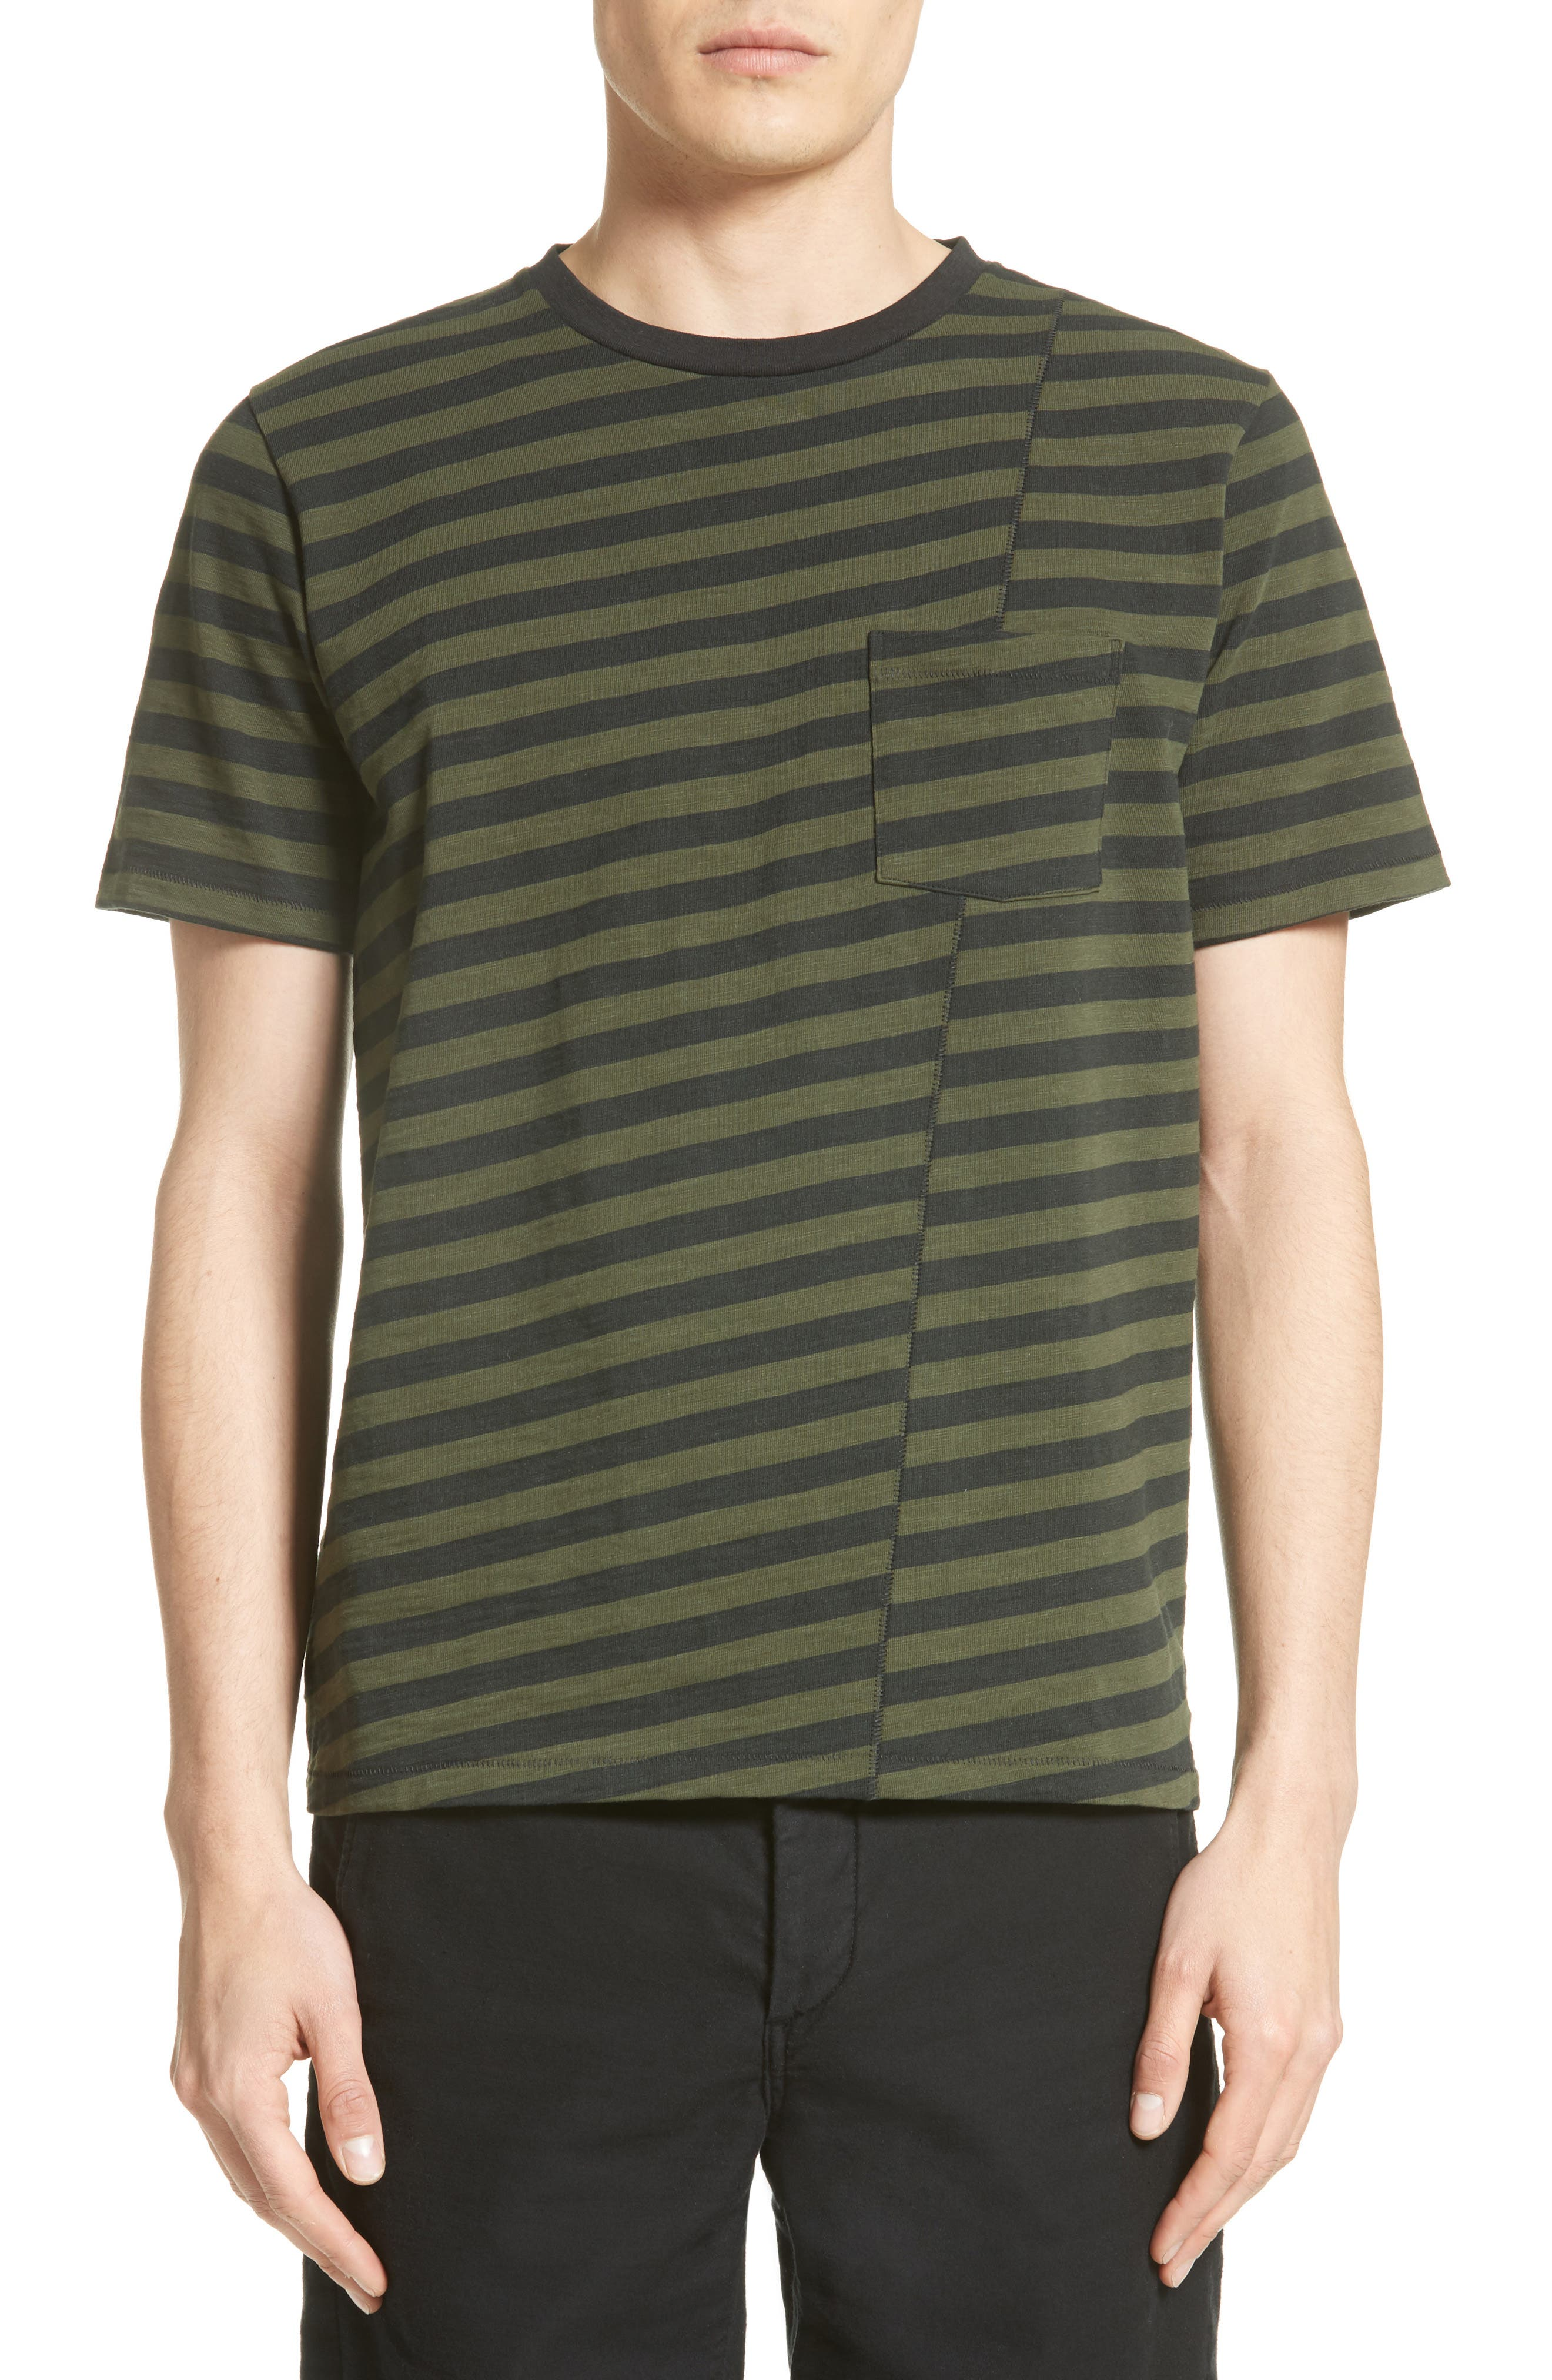 Alternate Image 1 Selected - rag & bone Blake Stripe T-Shirt